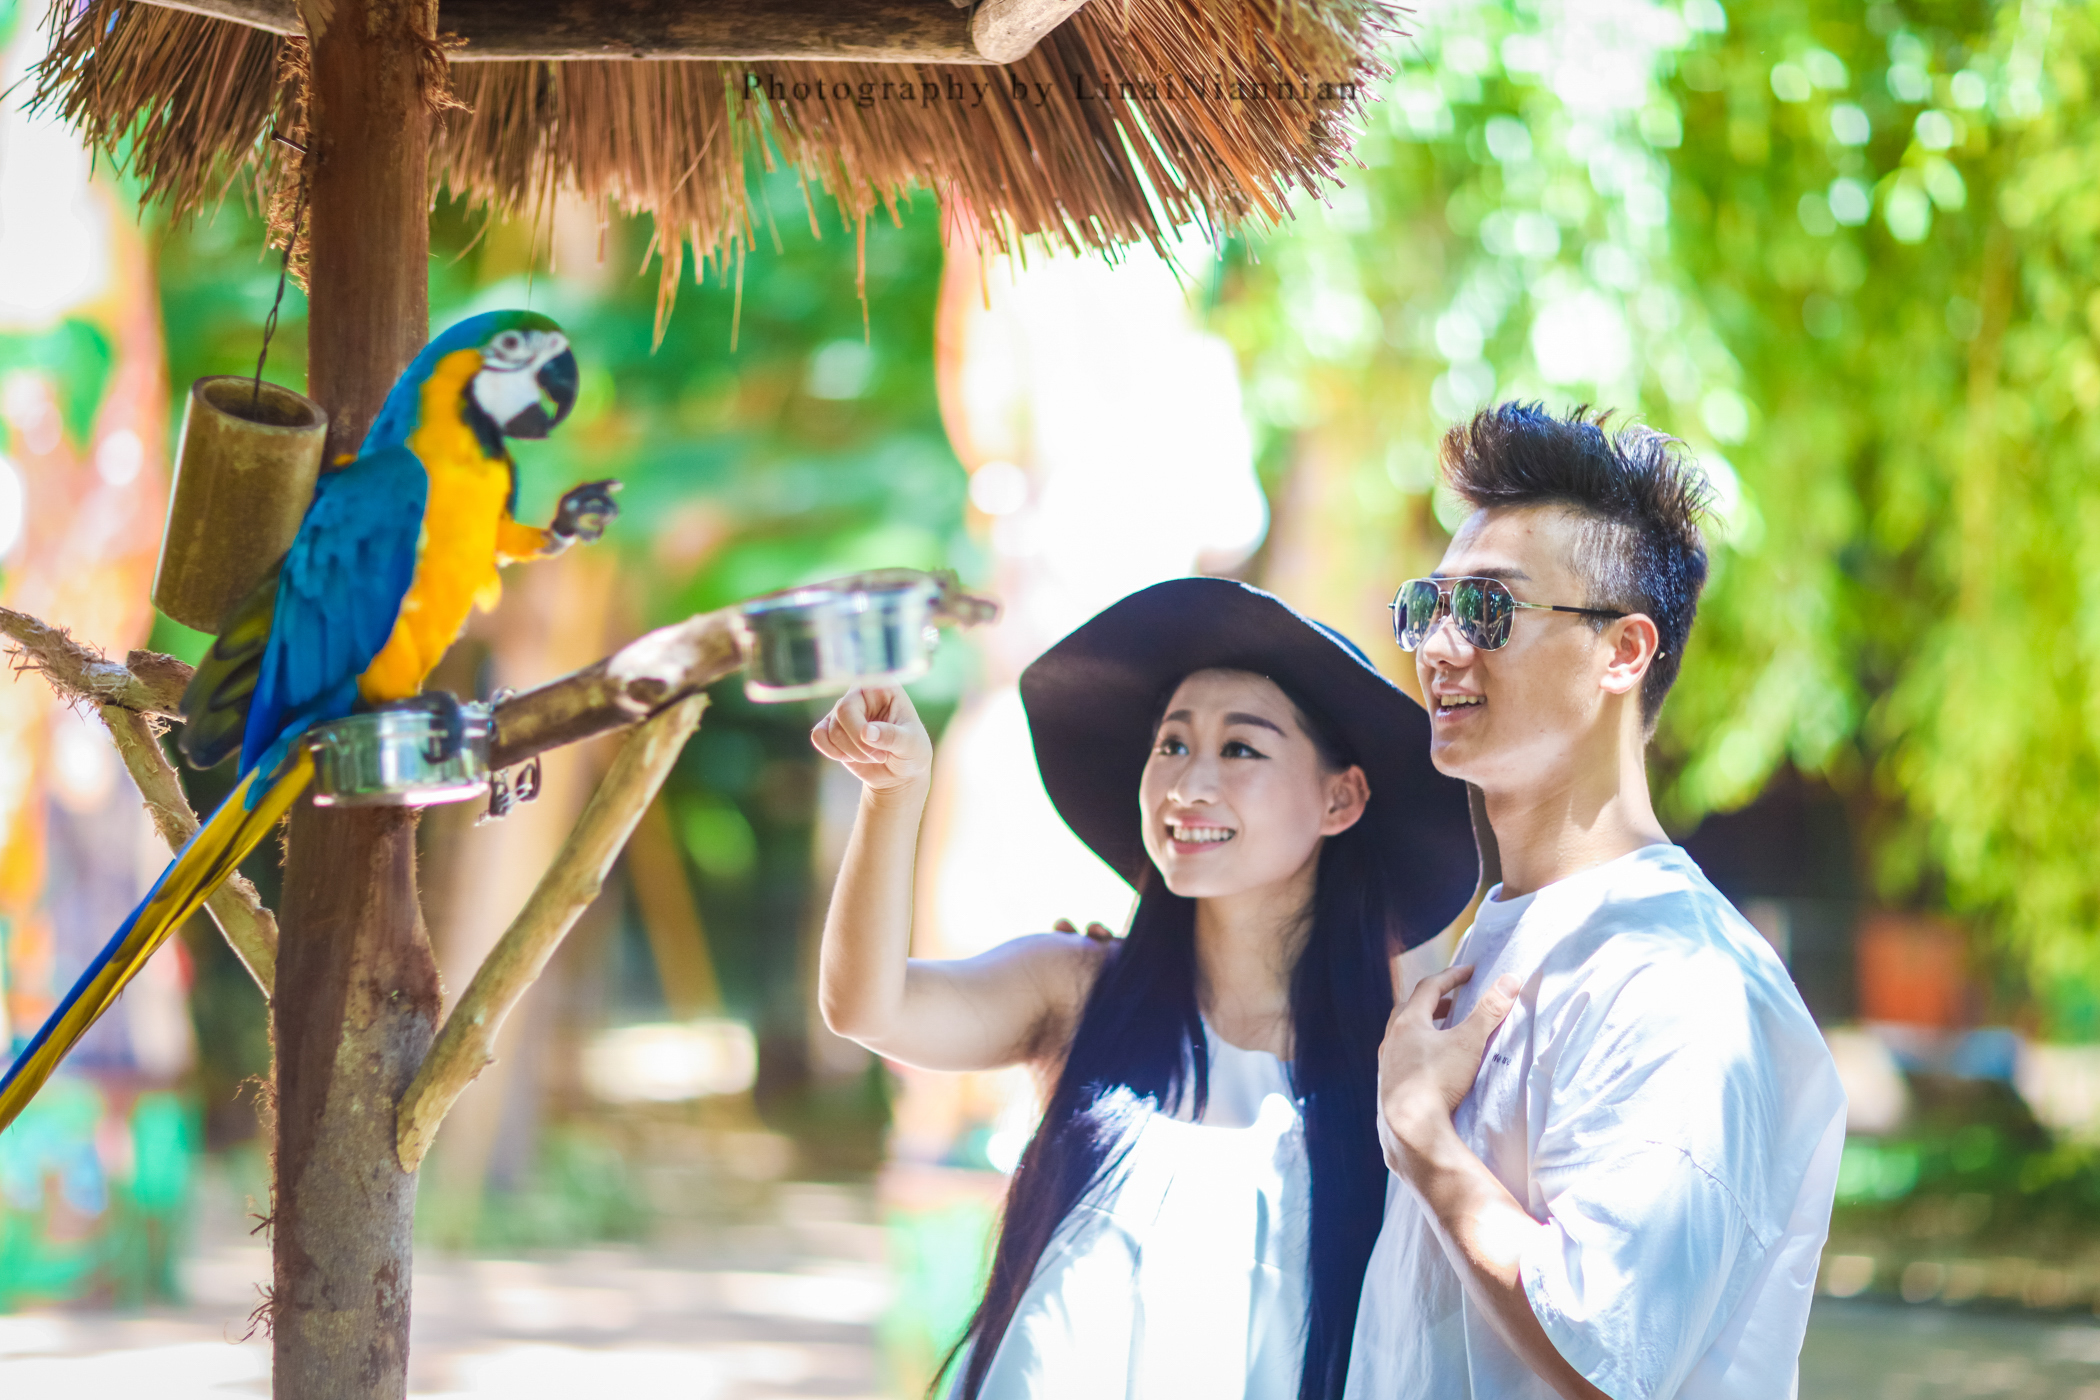 Enjoy wildlife at the four animal attractions in Hainan